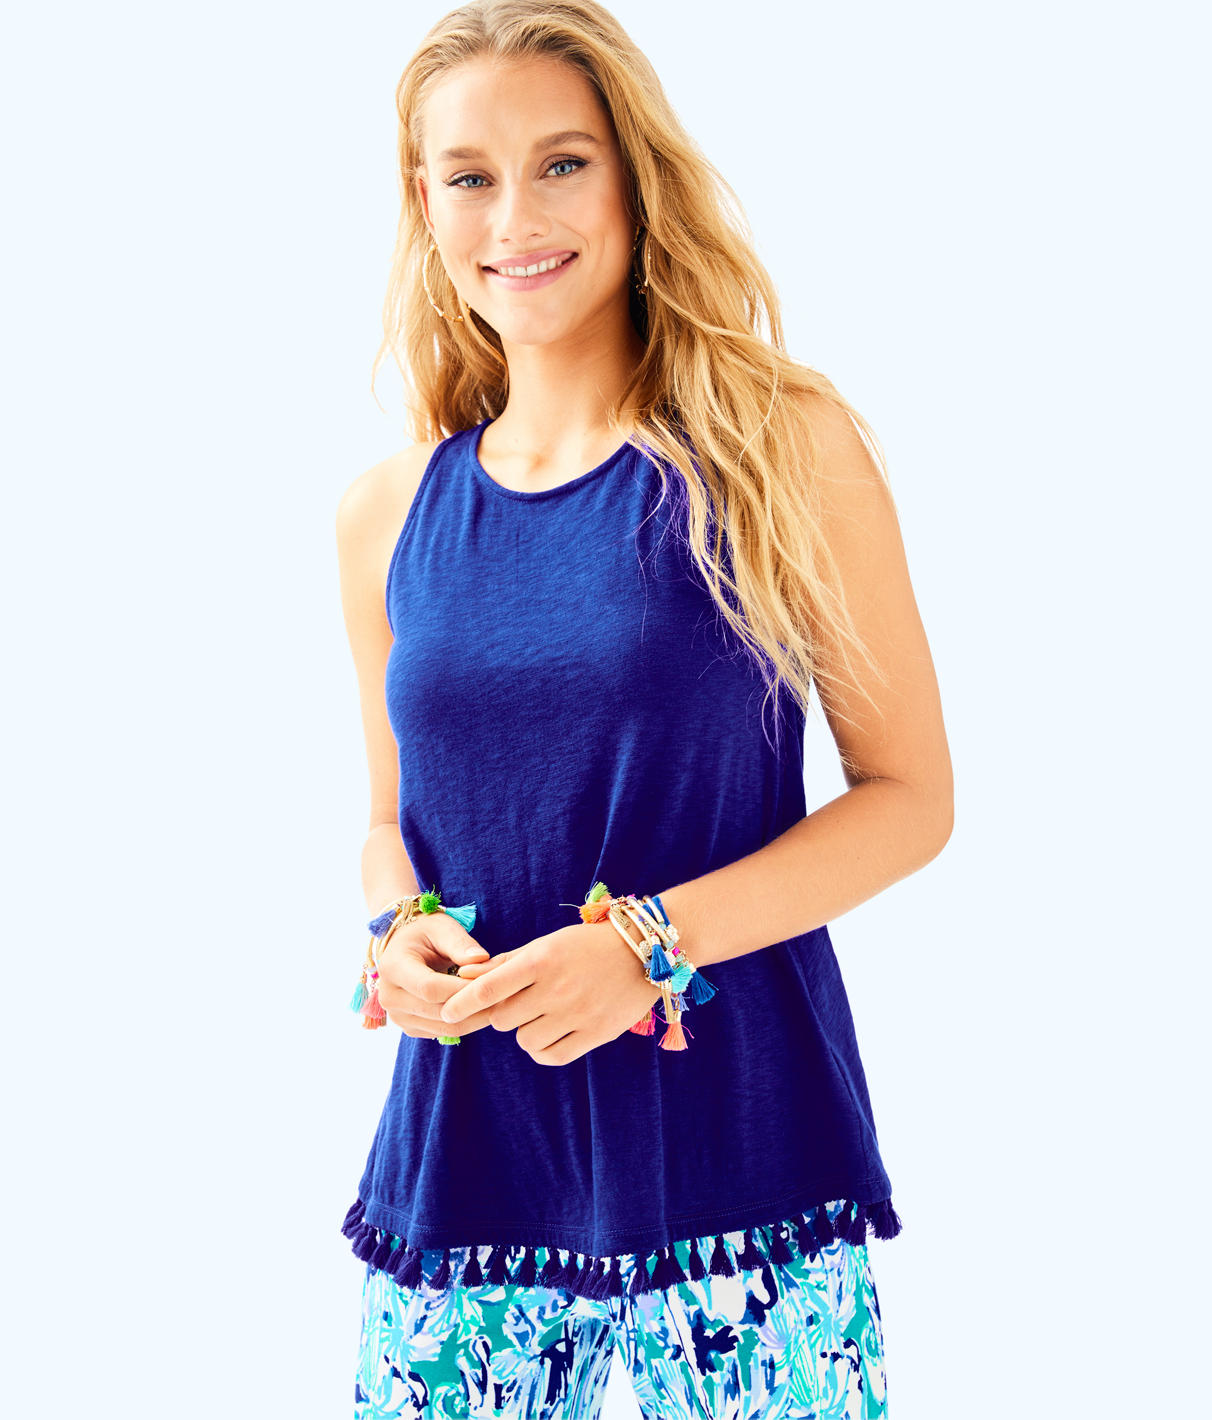 Lilly Pulitzer Lilly Pulitzer Womens Rexie Top